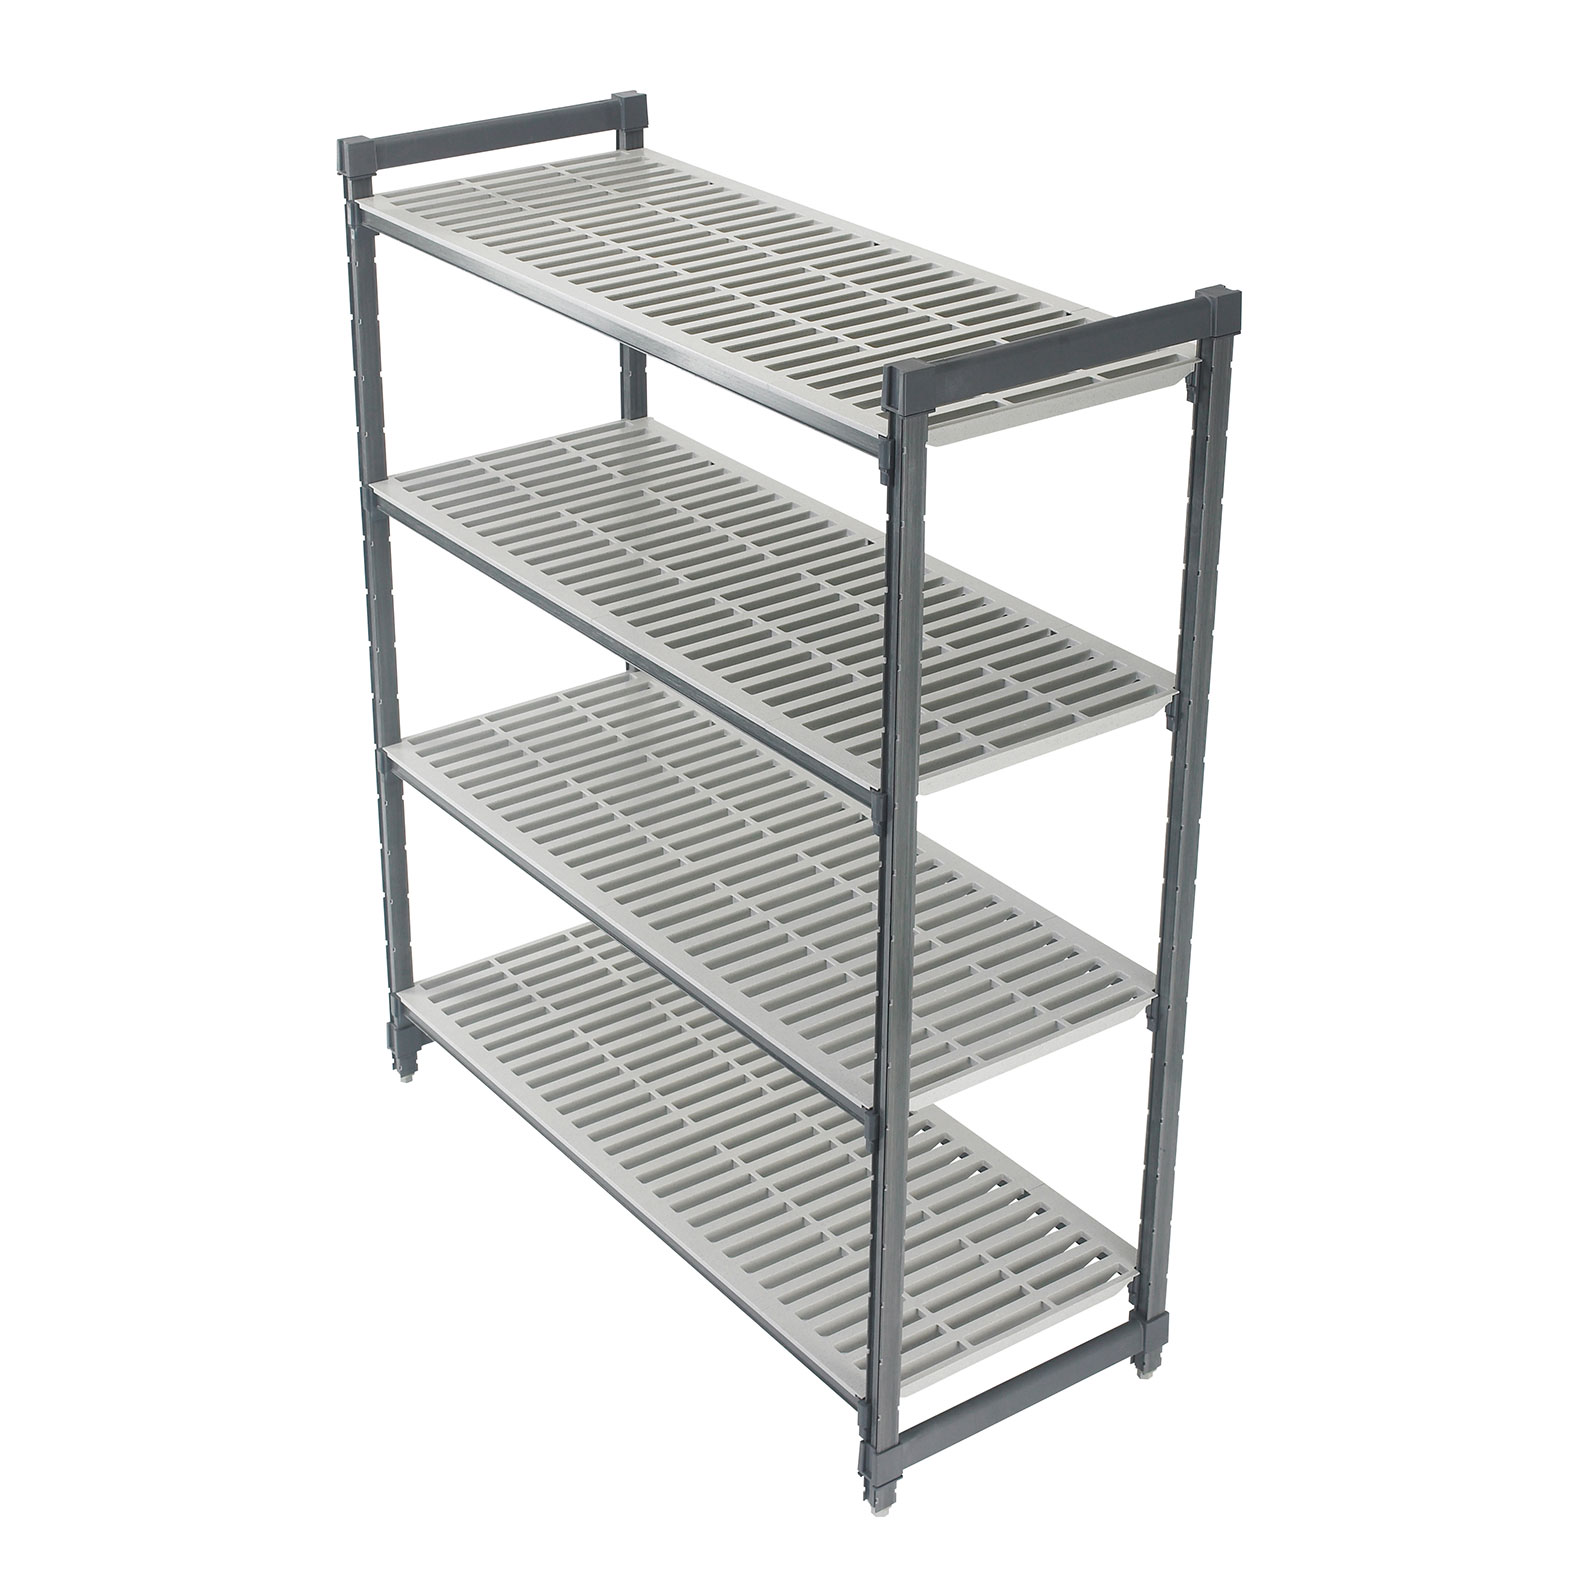 ESU213672V4580 Cambro shelving unit, all plastic